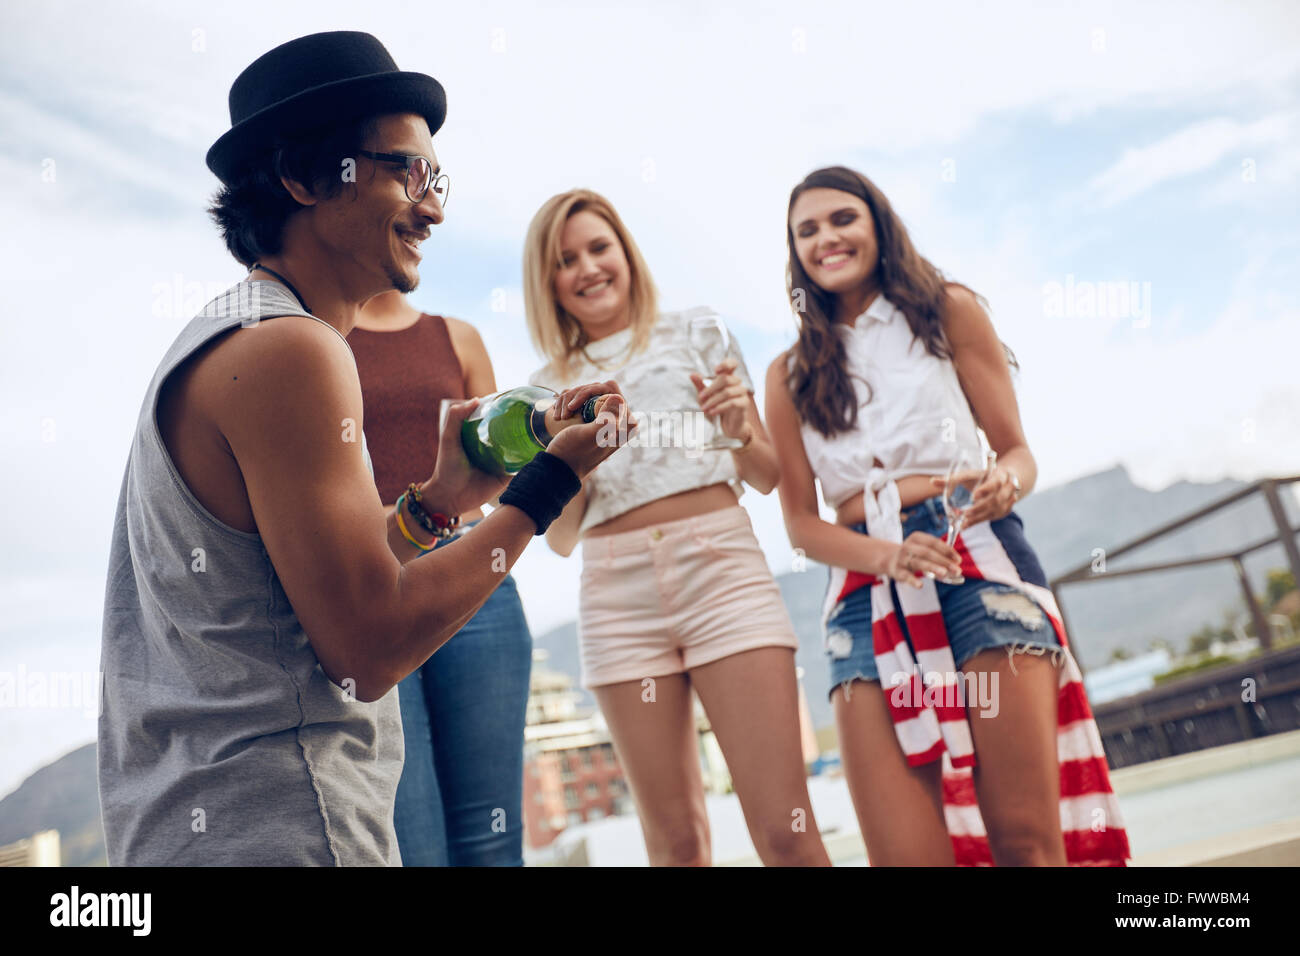 Outdoor shot of young man opening a bottle of champagne with female friends standing in background by the pool. - Stock Image